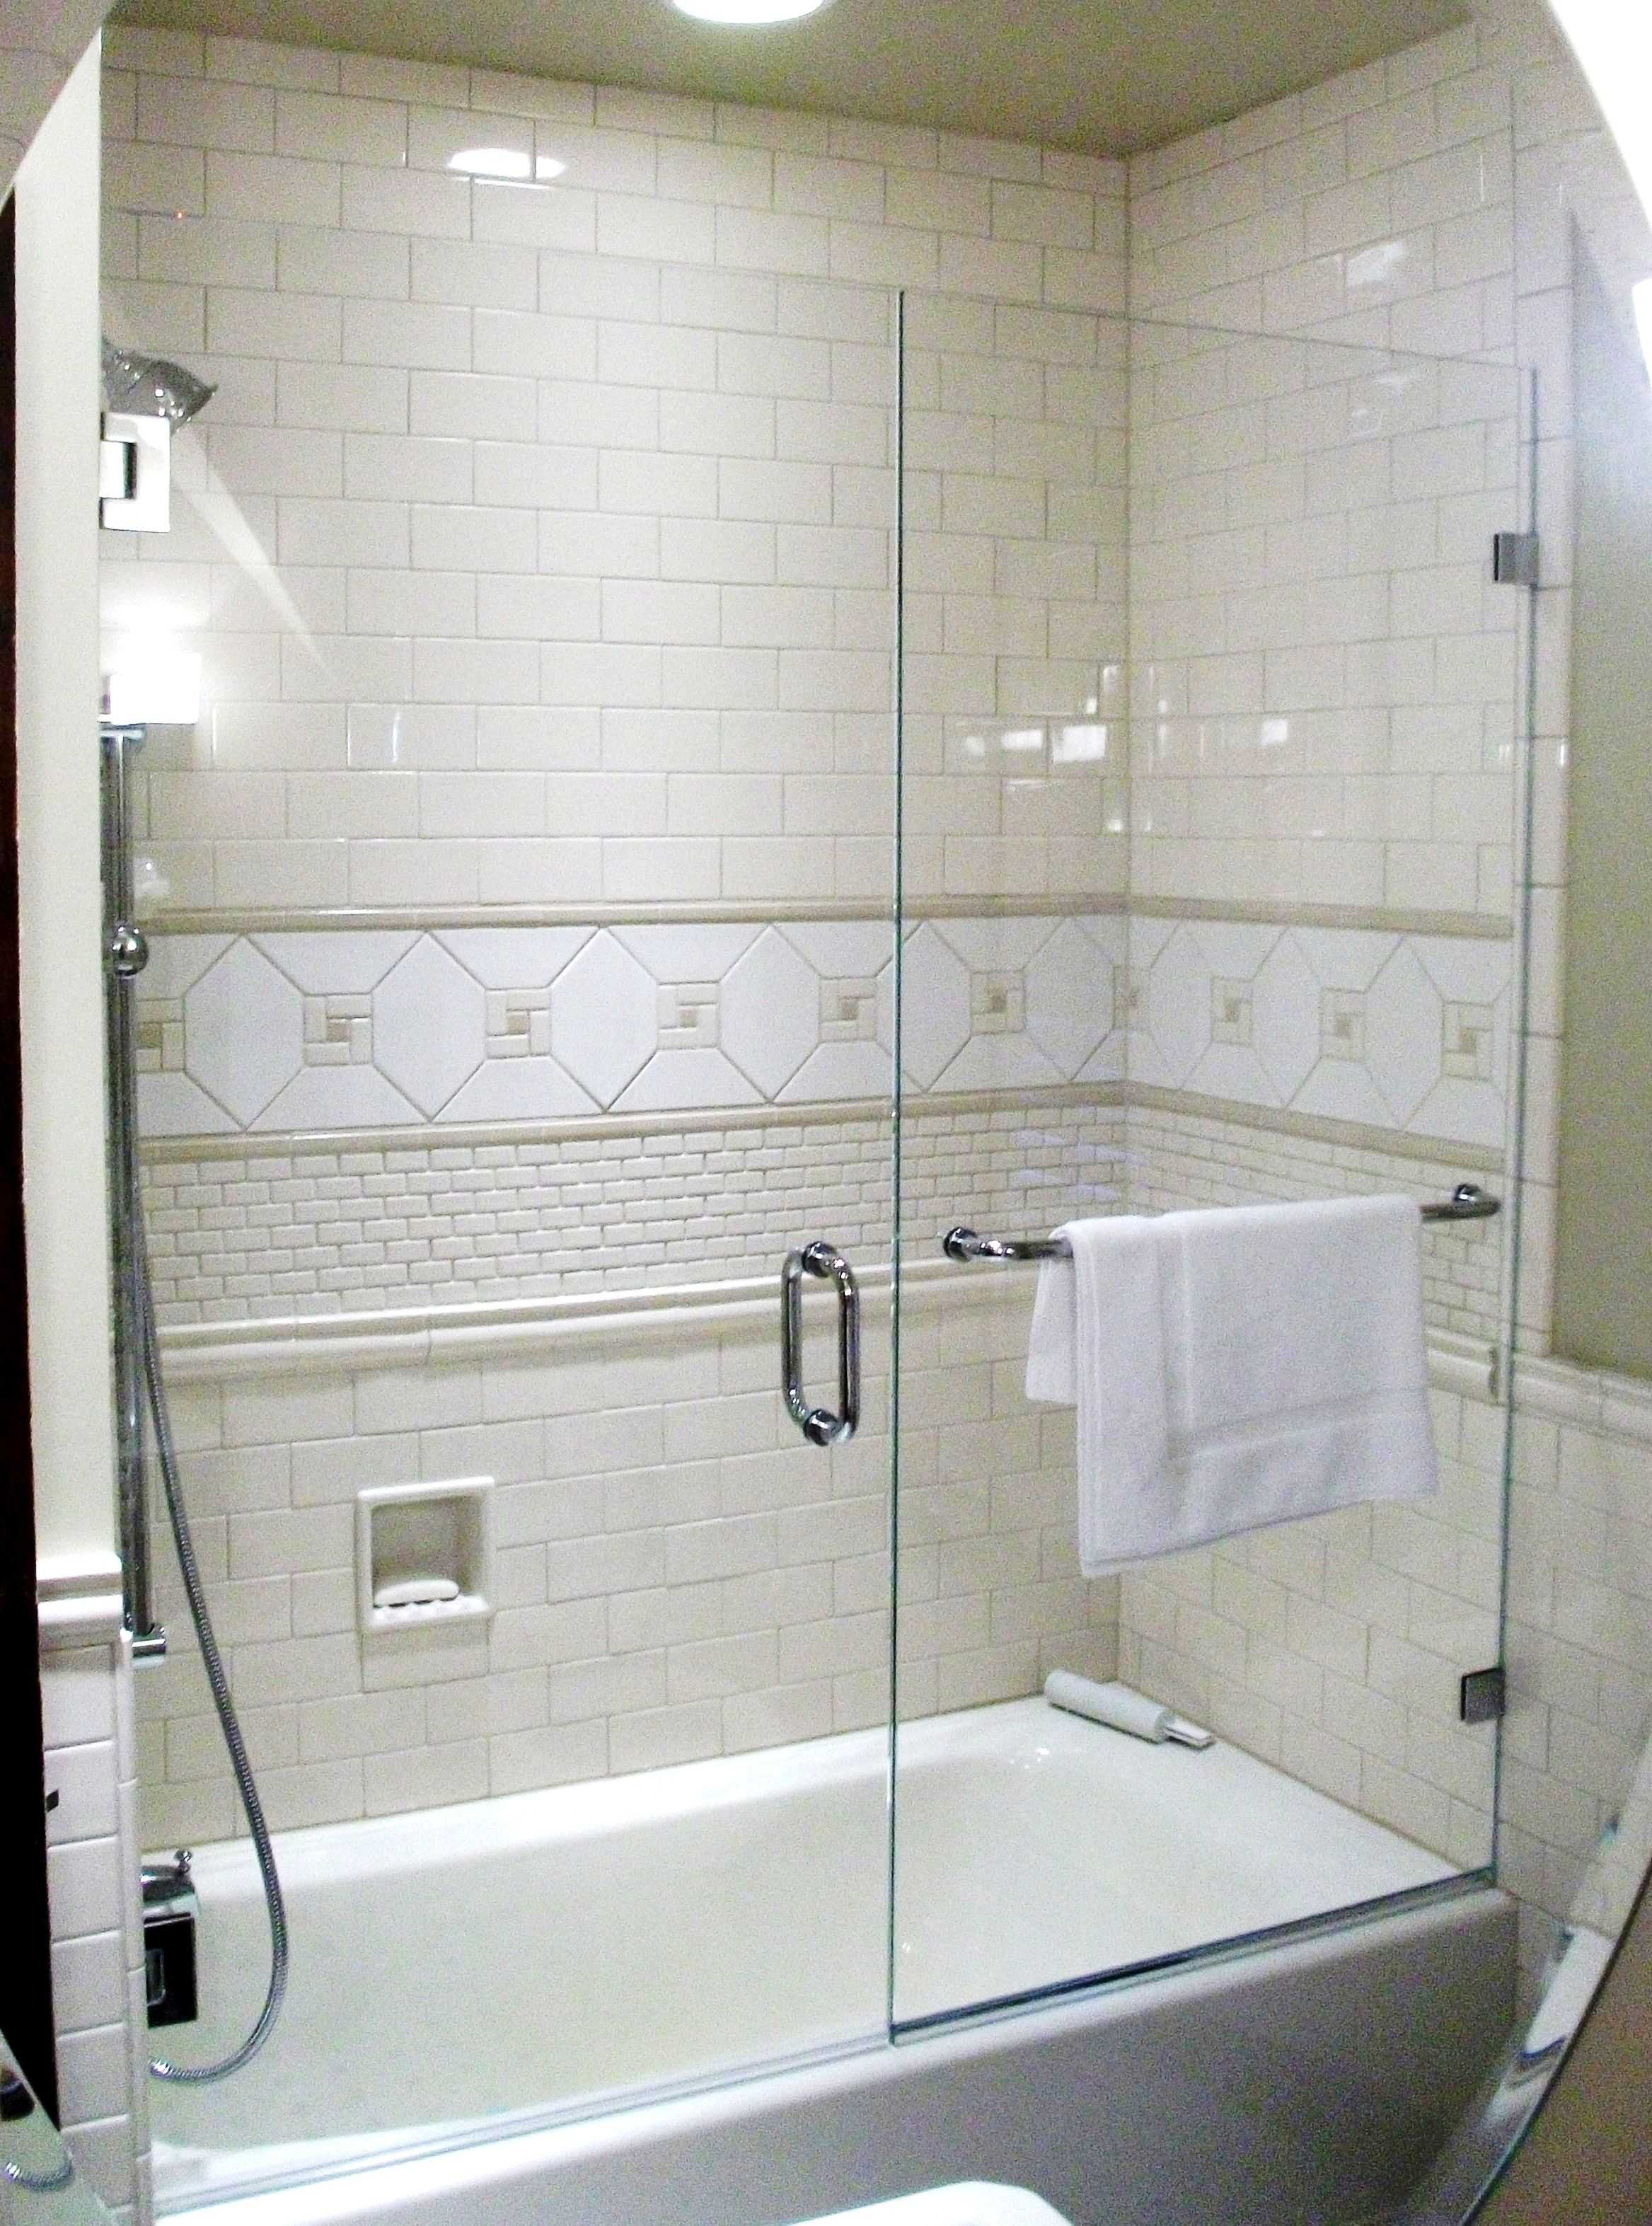 Frameless Shower Enclosure Door Panel On Tub With Wall Mount